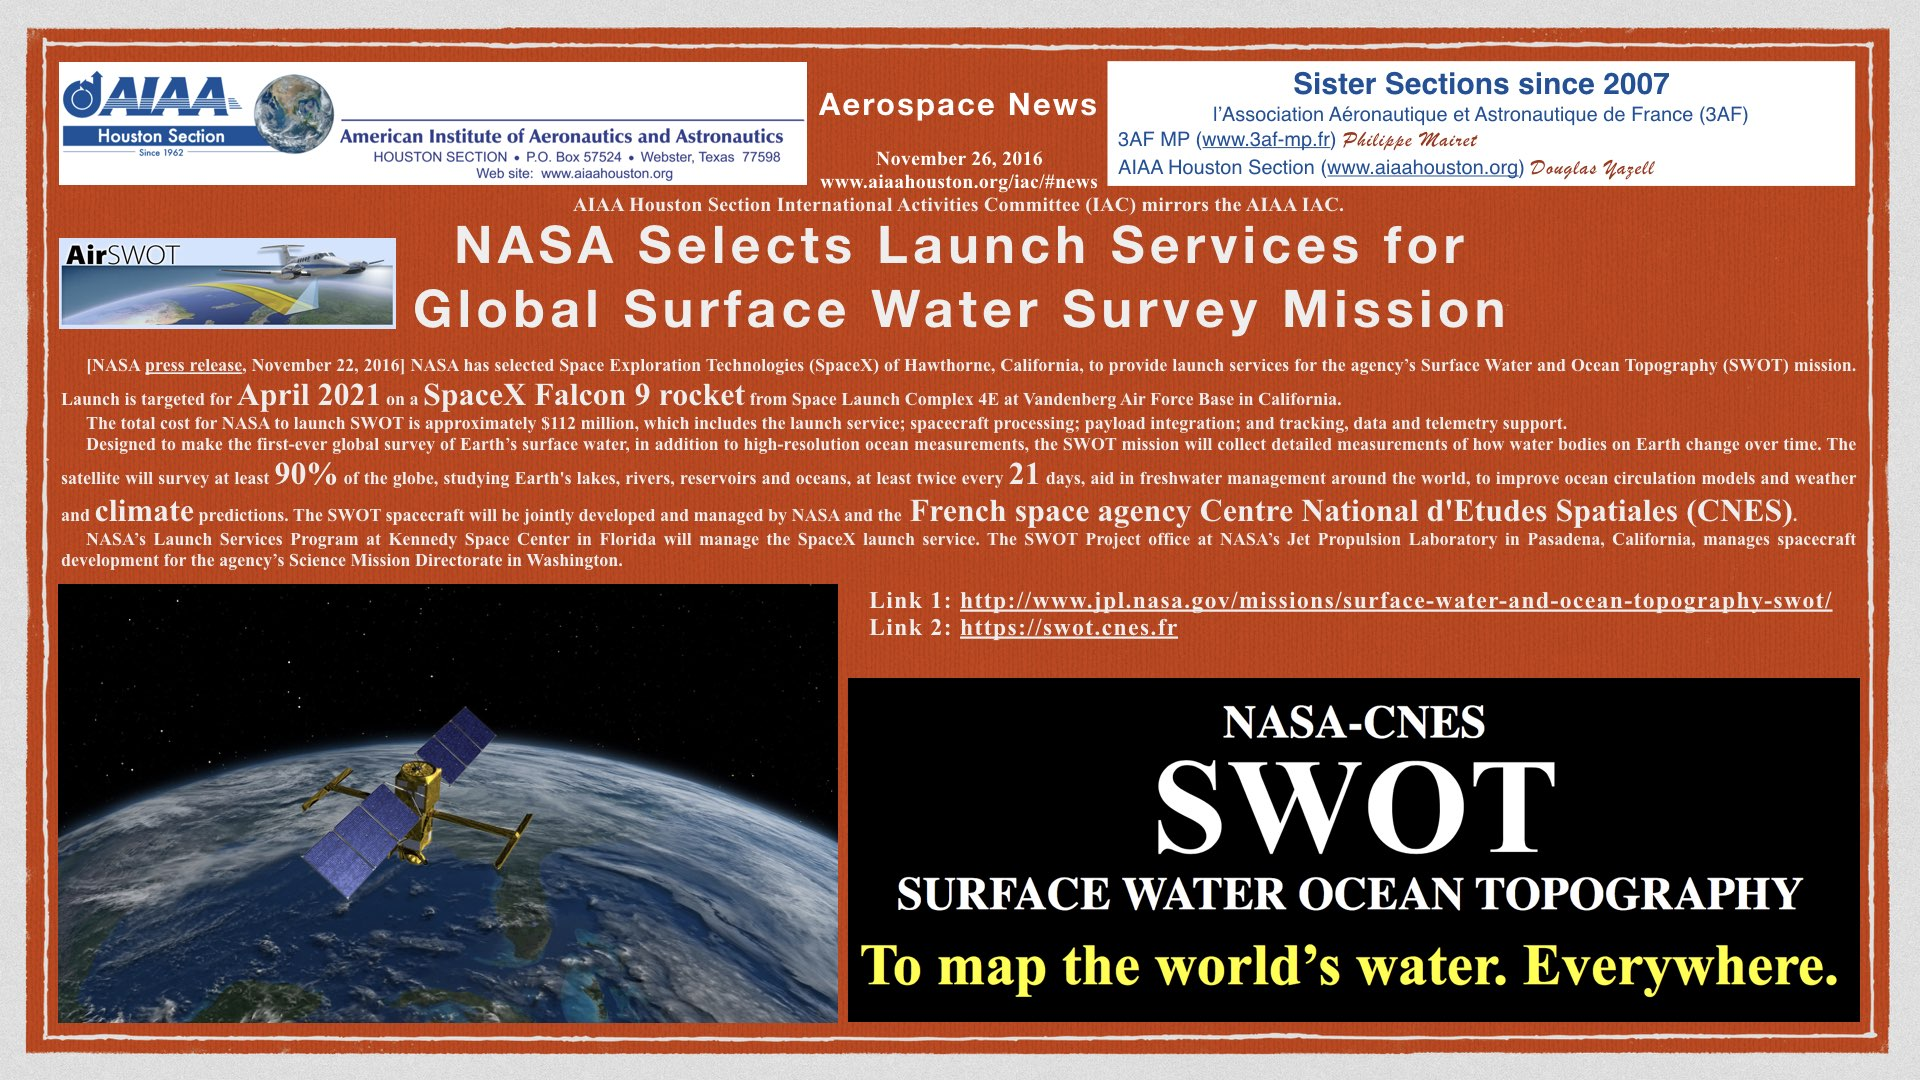 Above: NASA Selects Launch Services for Global Surface Water Survey Mission. (Click to zoom.)